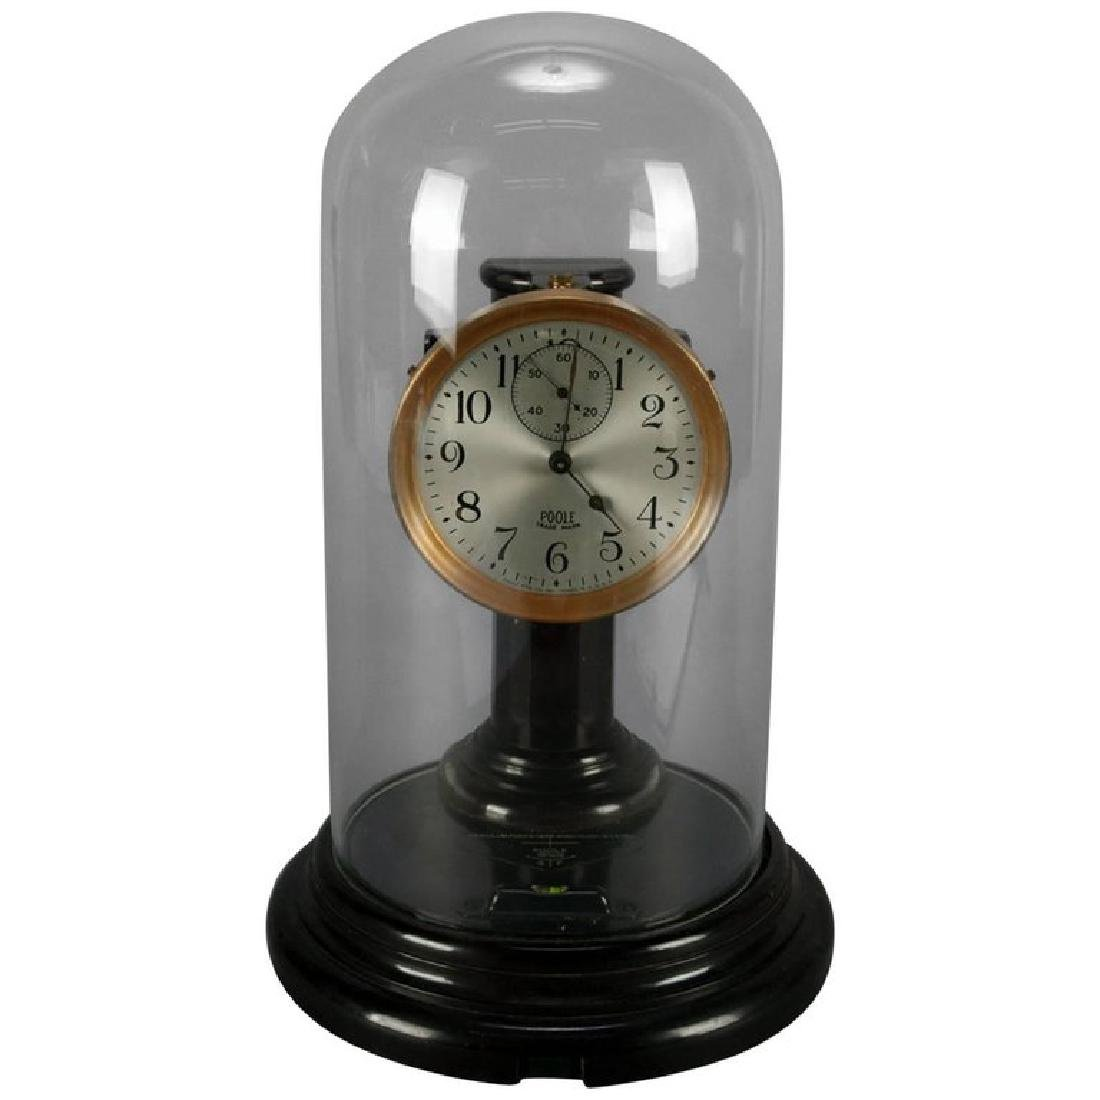 Bakelite Battery Operated Impulse Dome Clock by Poole